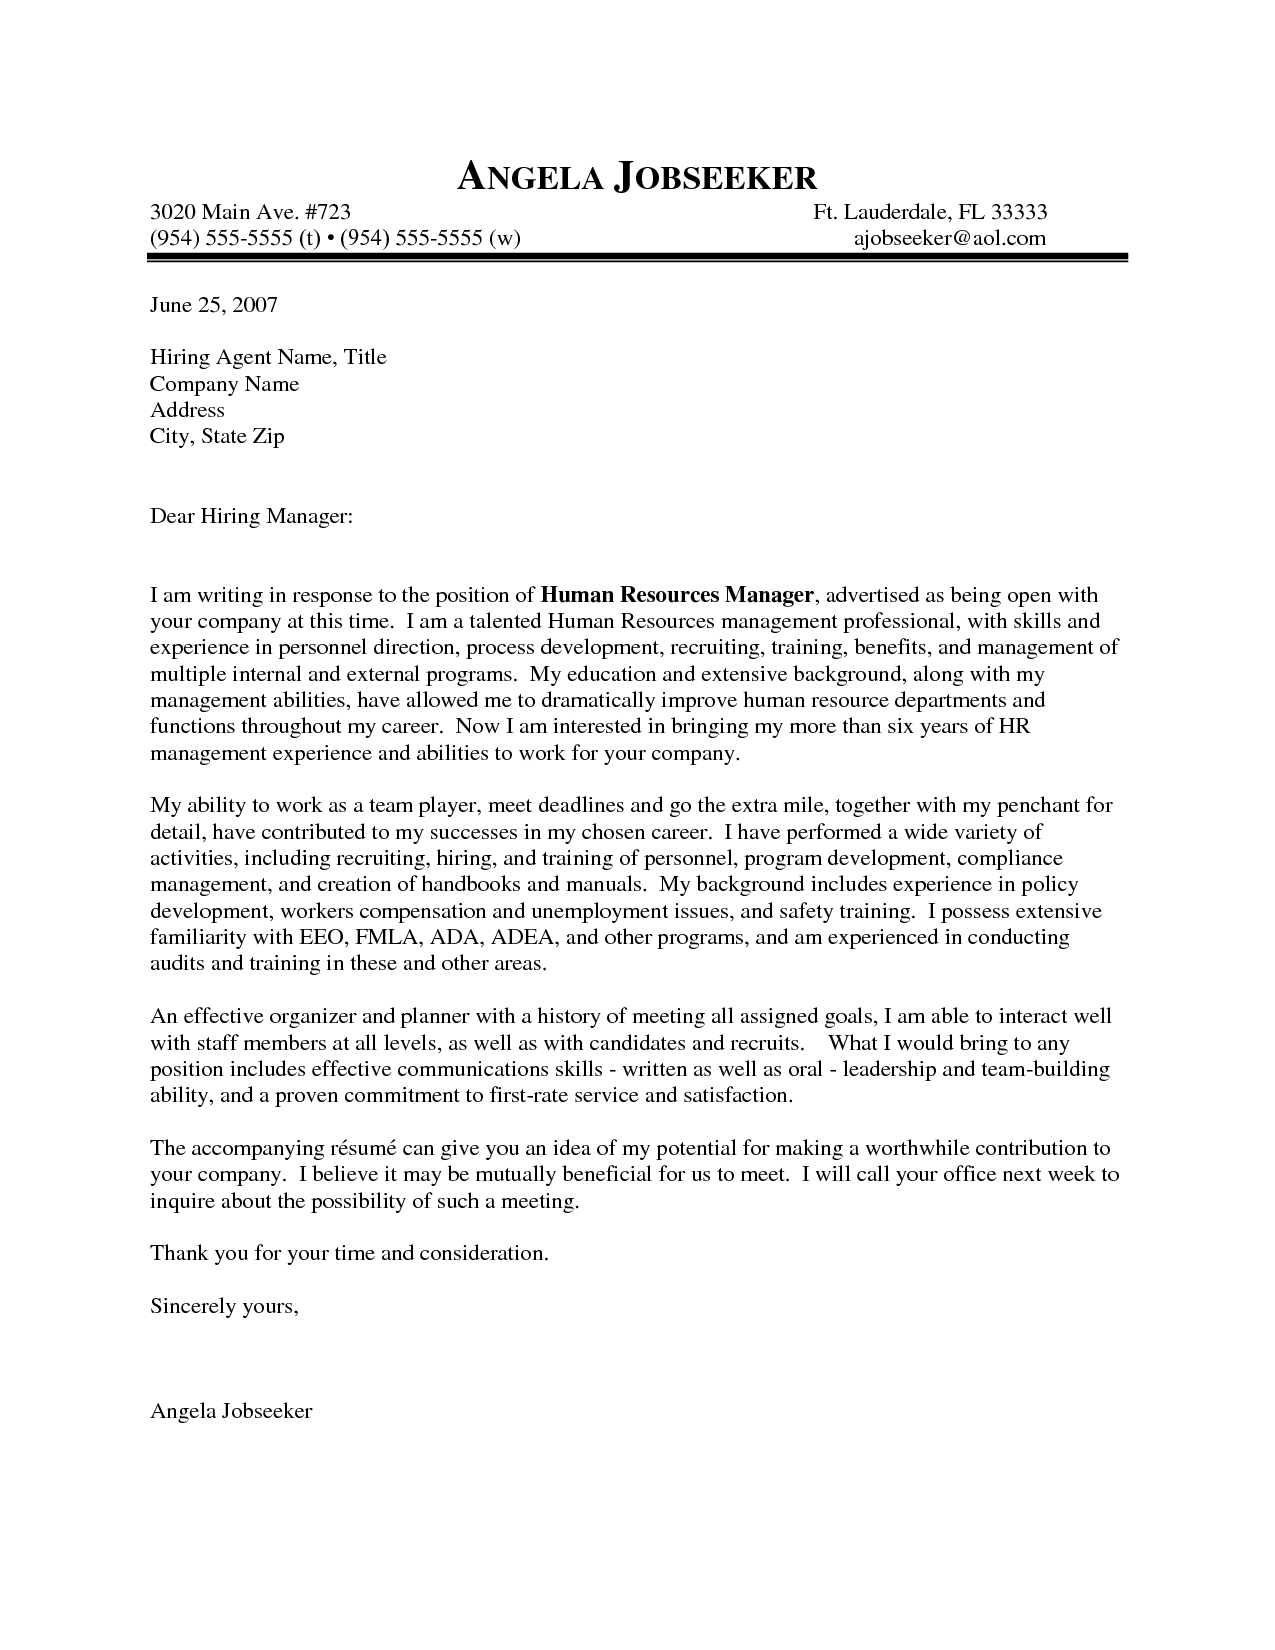 Outstanding Cover Letter Examples HR Manager Cover Letter - Cover Letter Examples For Resume